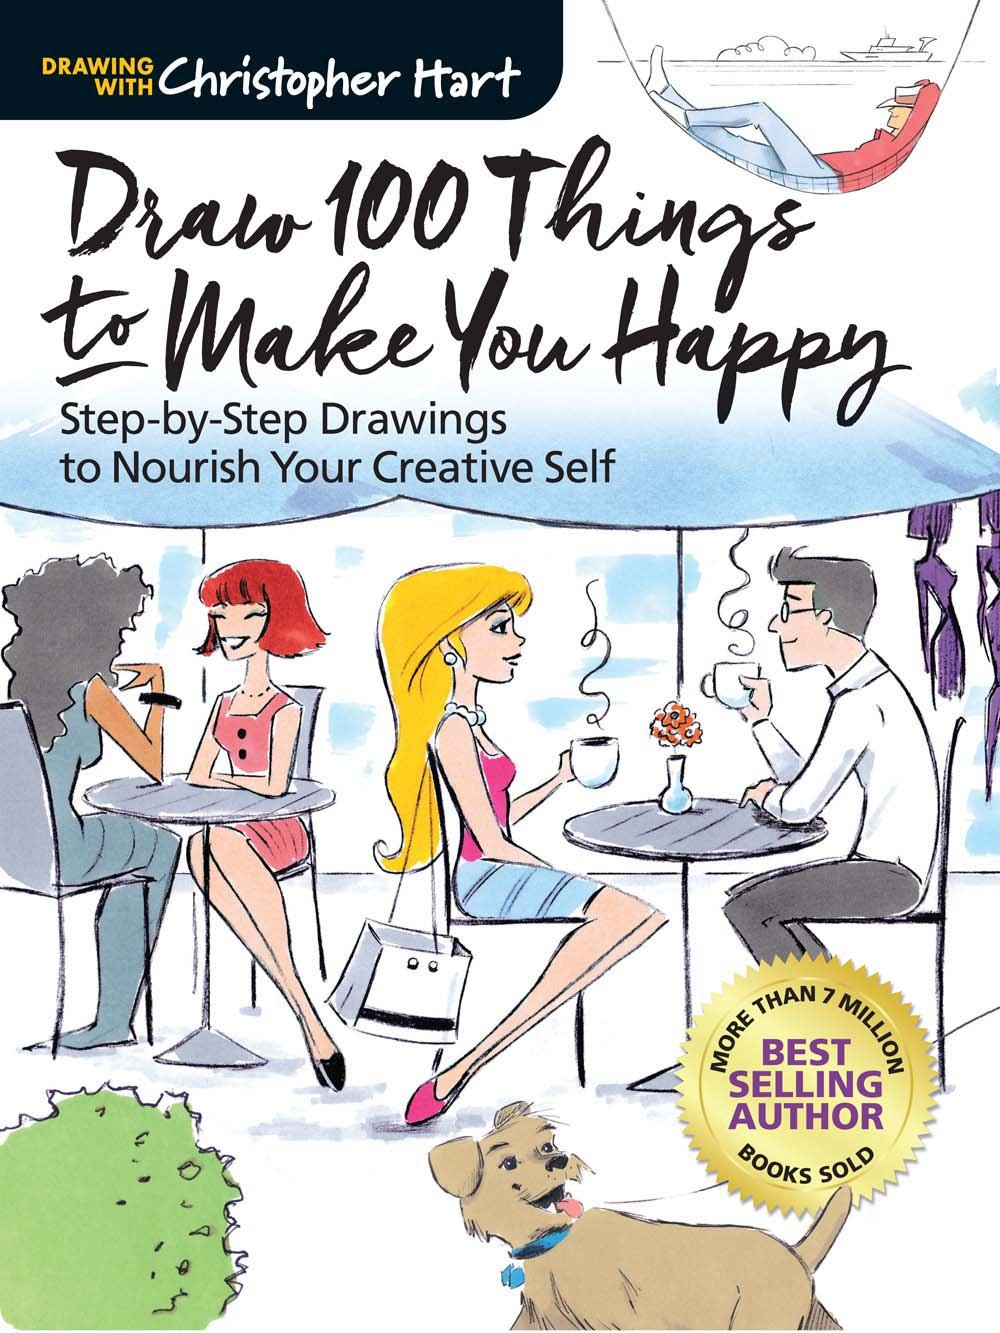 draw-100-things-to-make-you-happy-step-by-step-drawings-to-nourish-your-creative-self